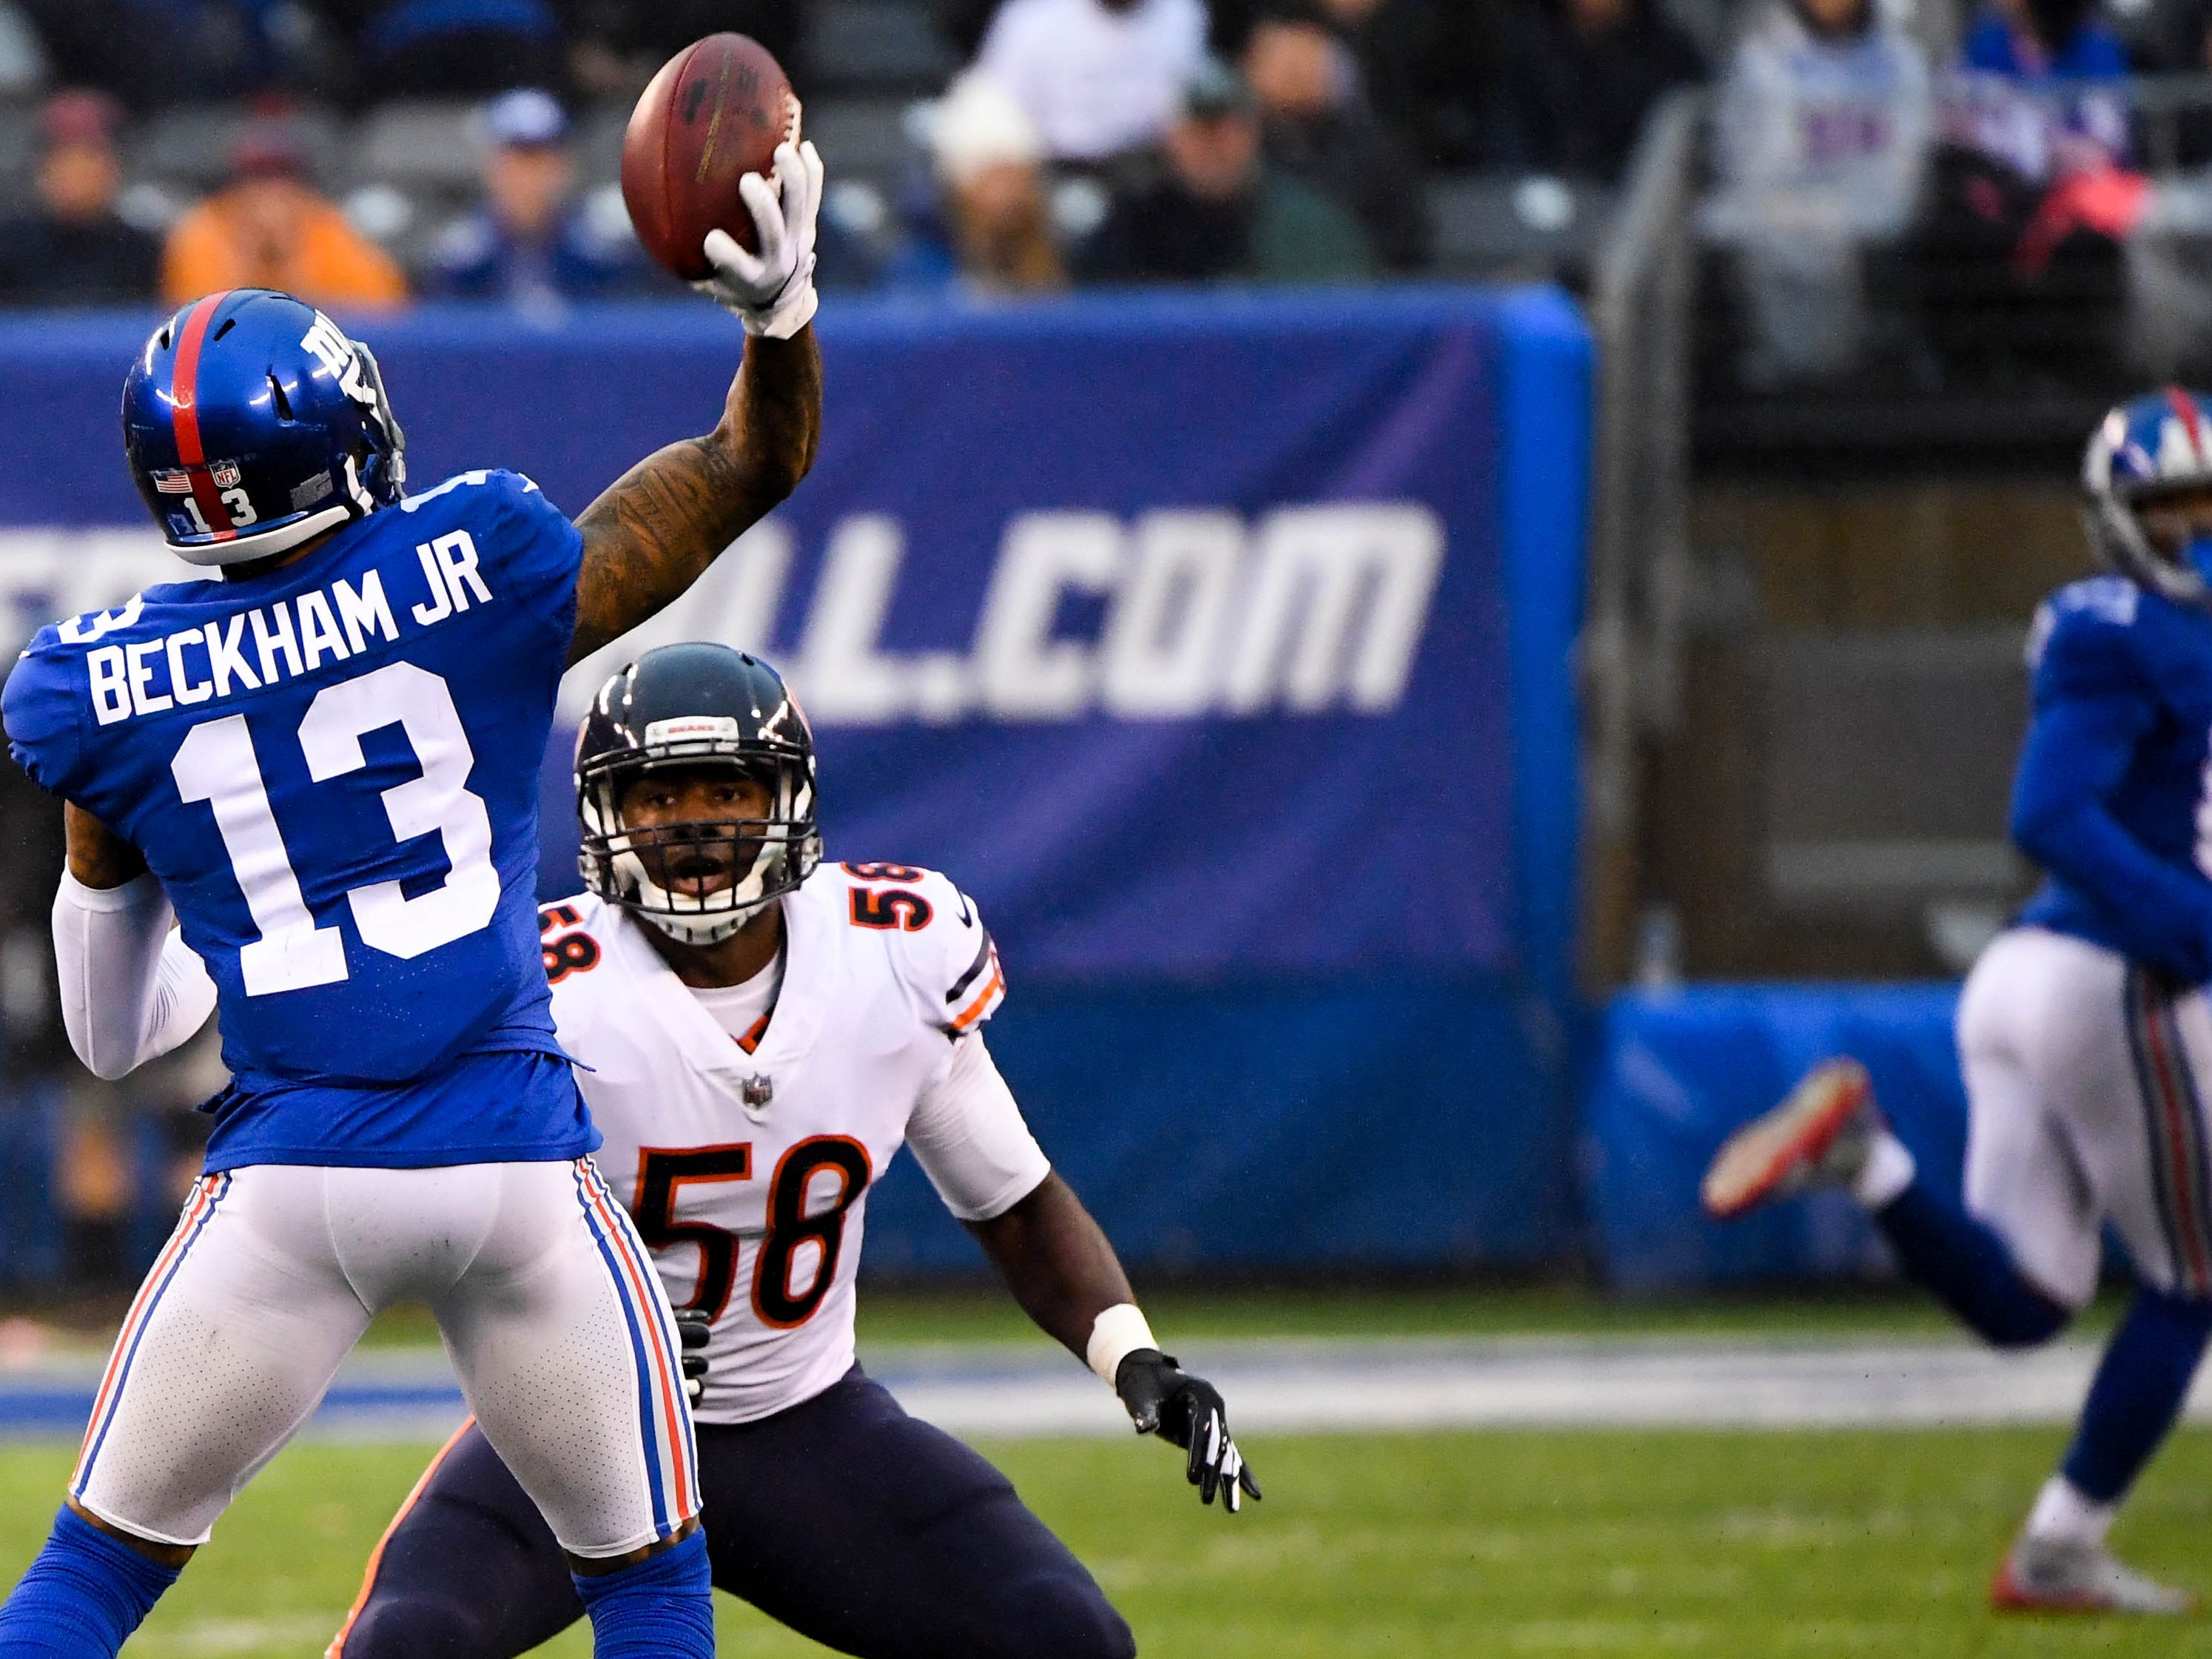 22. Giants (25): With $65M in guarantees headed his way, Odell Beckham must understand why no Giants fan wants him  making any more on-field business decisions.